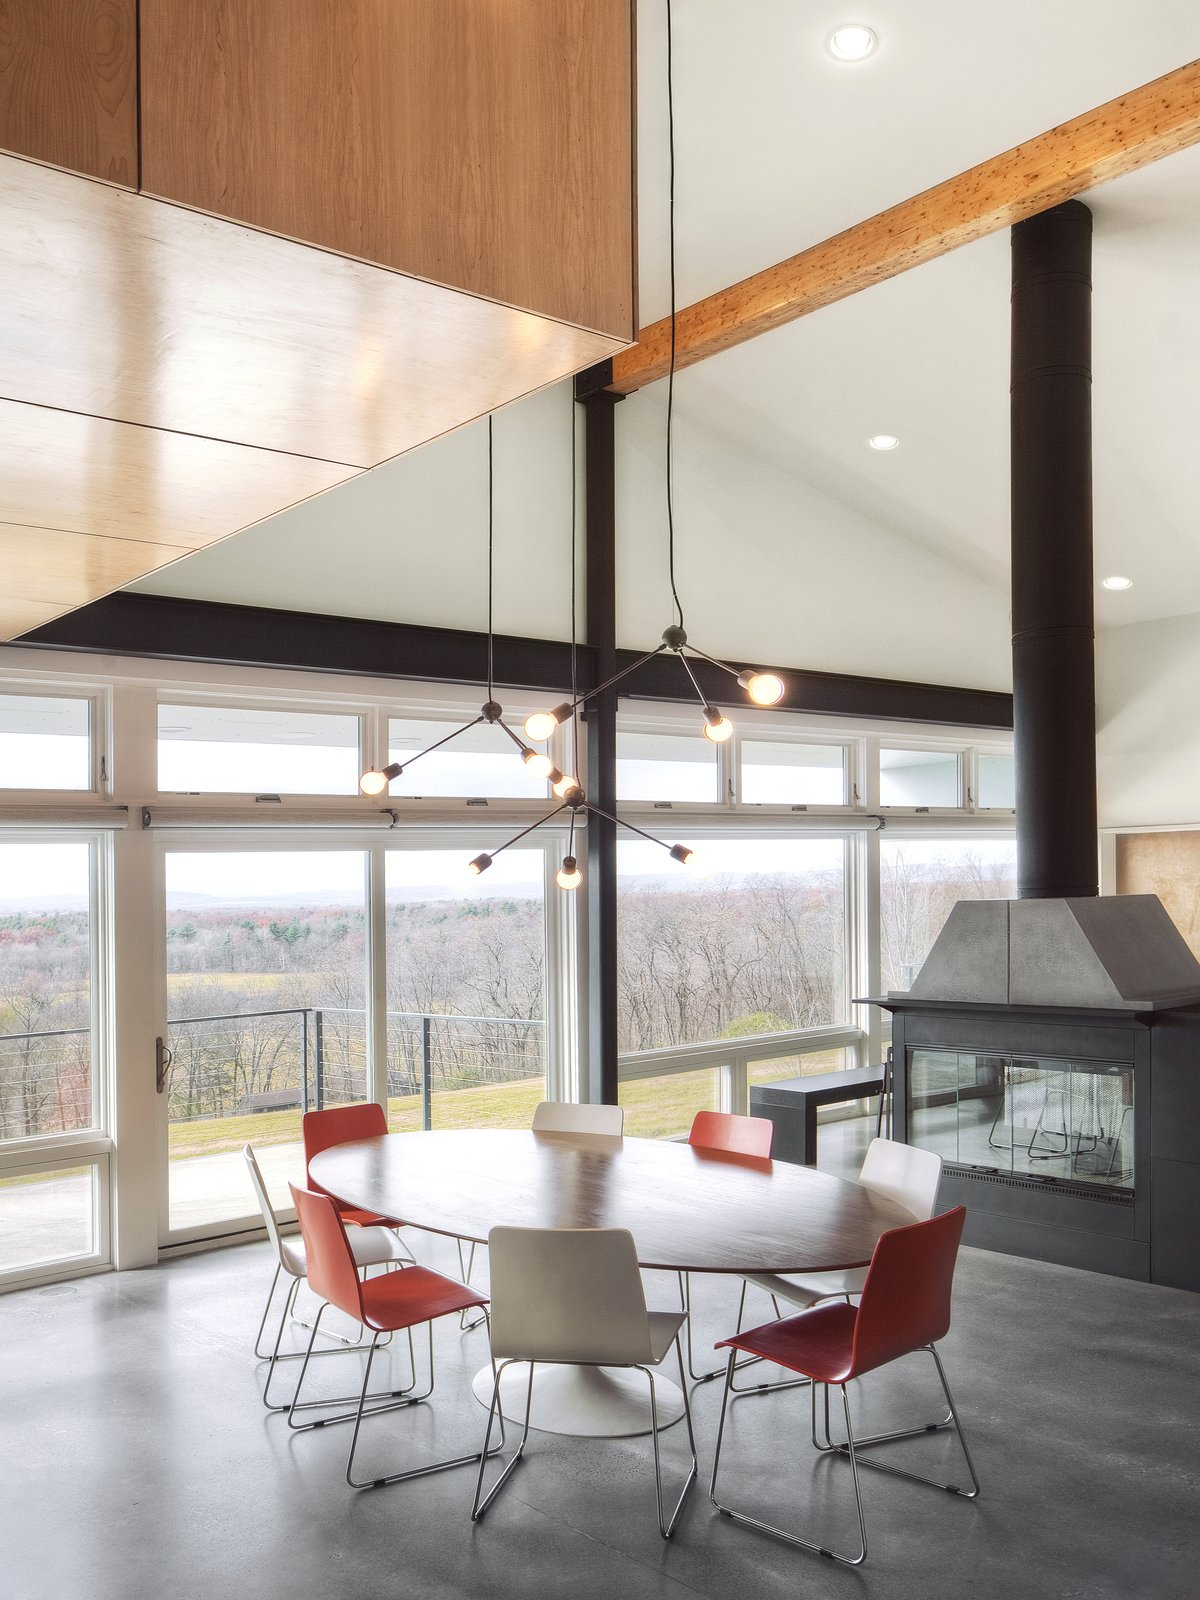 """""""The windows and patio doors, all made from super low-E insulated glass, open onto the amazing views and give easy access to expansive decks and a pool terrace,"""" Mulvena says. His team conducted solar studies and installed a retractable screen from MechoShade that would shade the house in the summer.  Hudson Valley Dream Retreat by Kelly Dawson"""